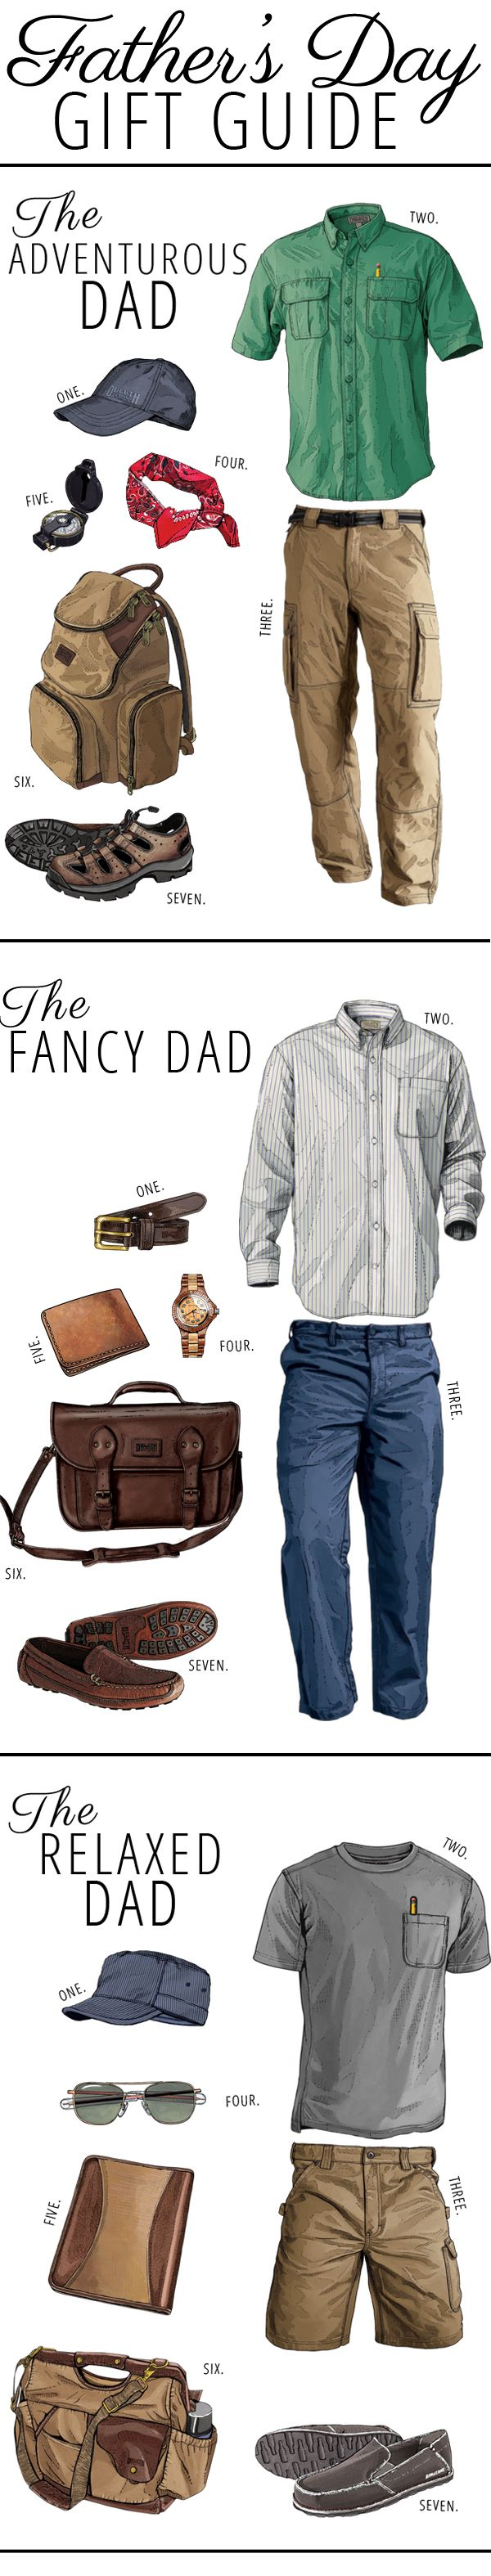 Awesome Father's Day gift guides with great ideas for different types of Dads (+ Win a $50 Gift Card to Duluth Trading Company)!